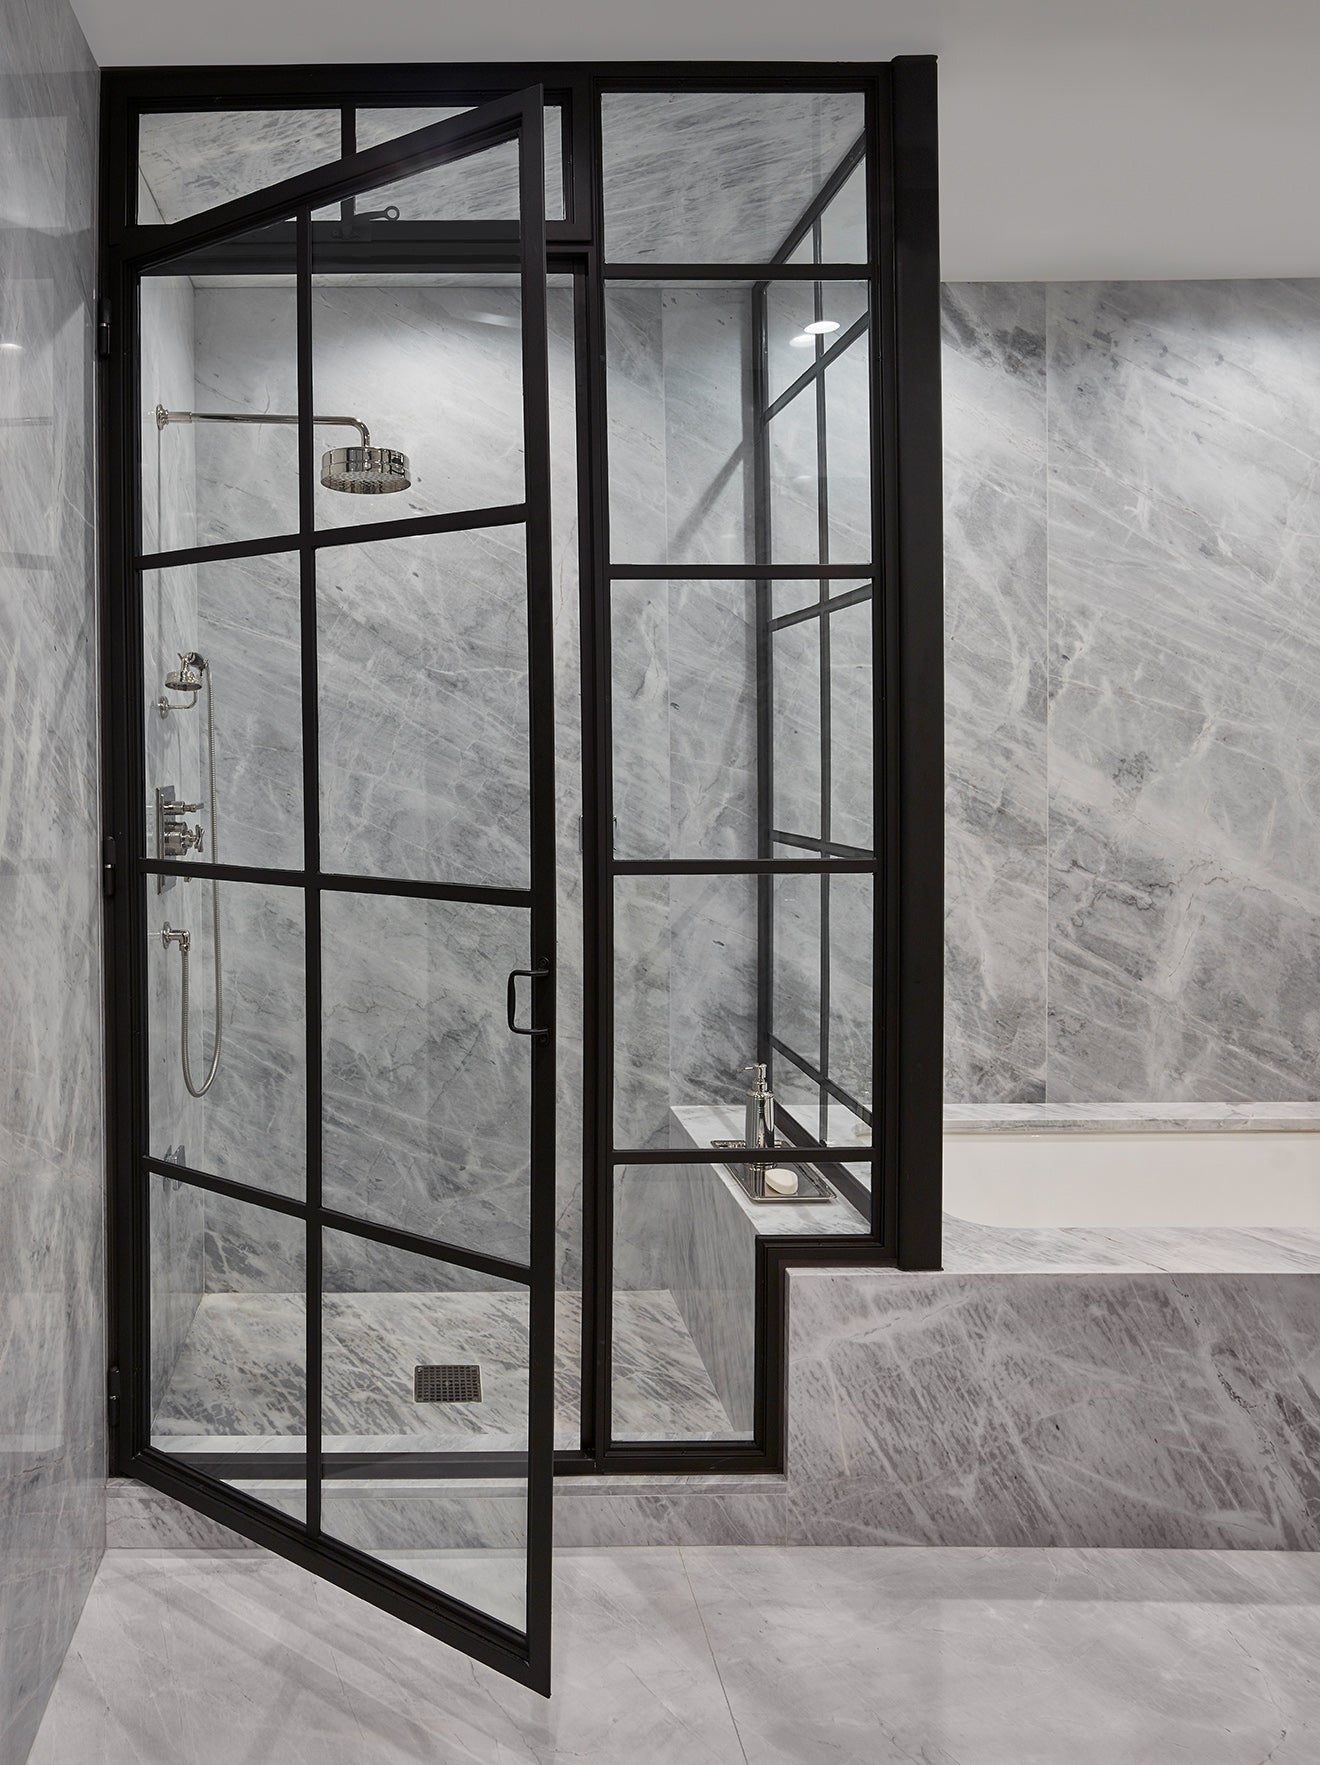 Grey marble bathroom with black industrial and glass shower cubicle